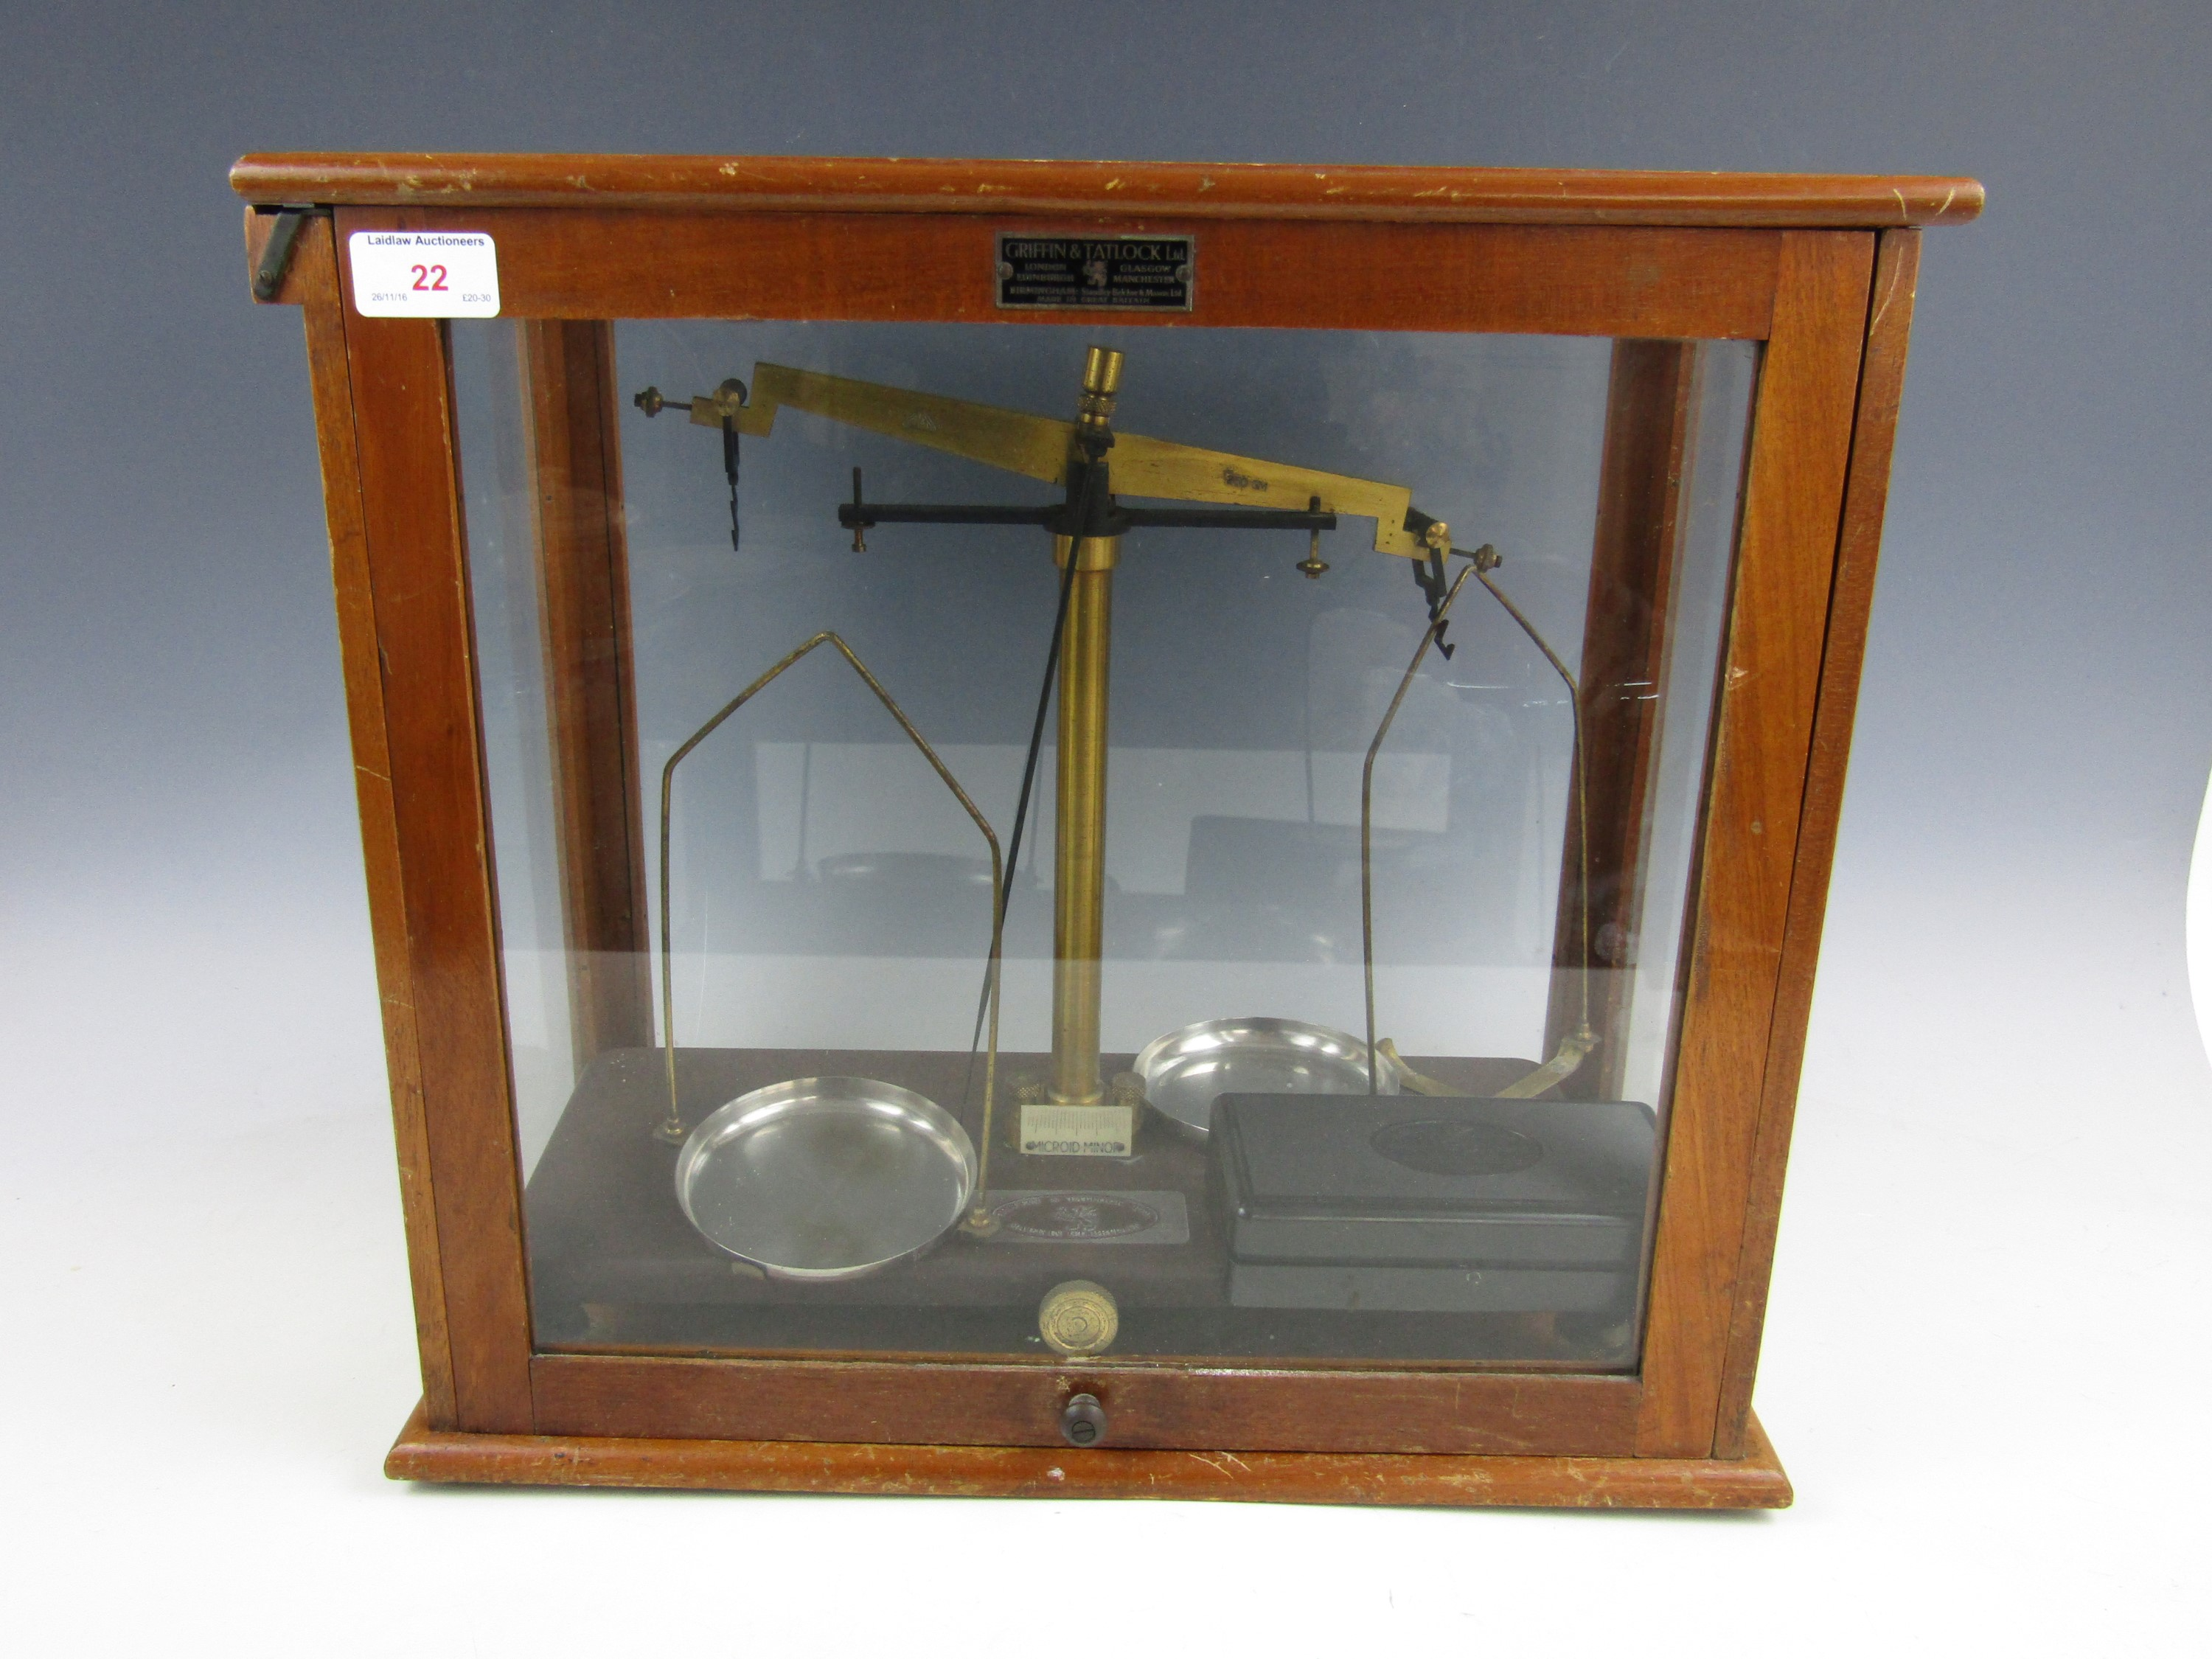 Lot 22 - Cased Griffin and Tatlock beam scales with weights